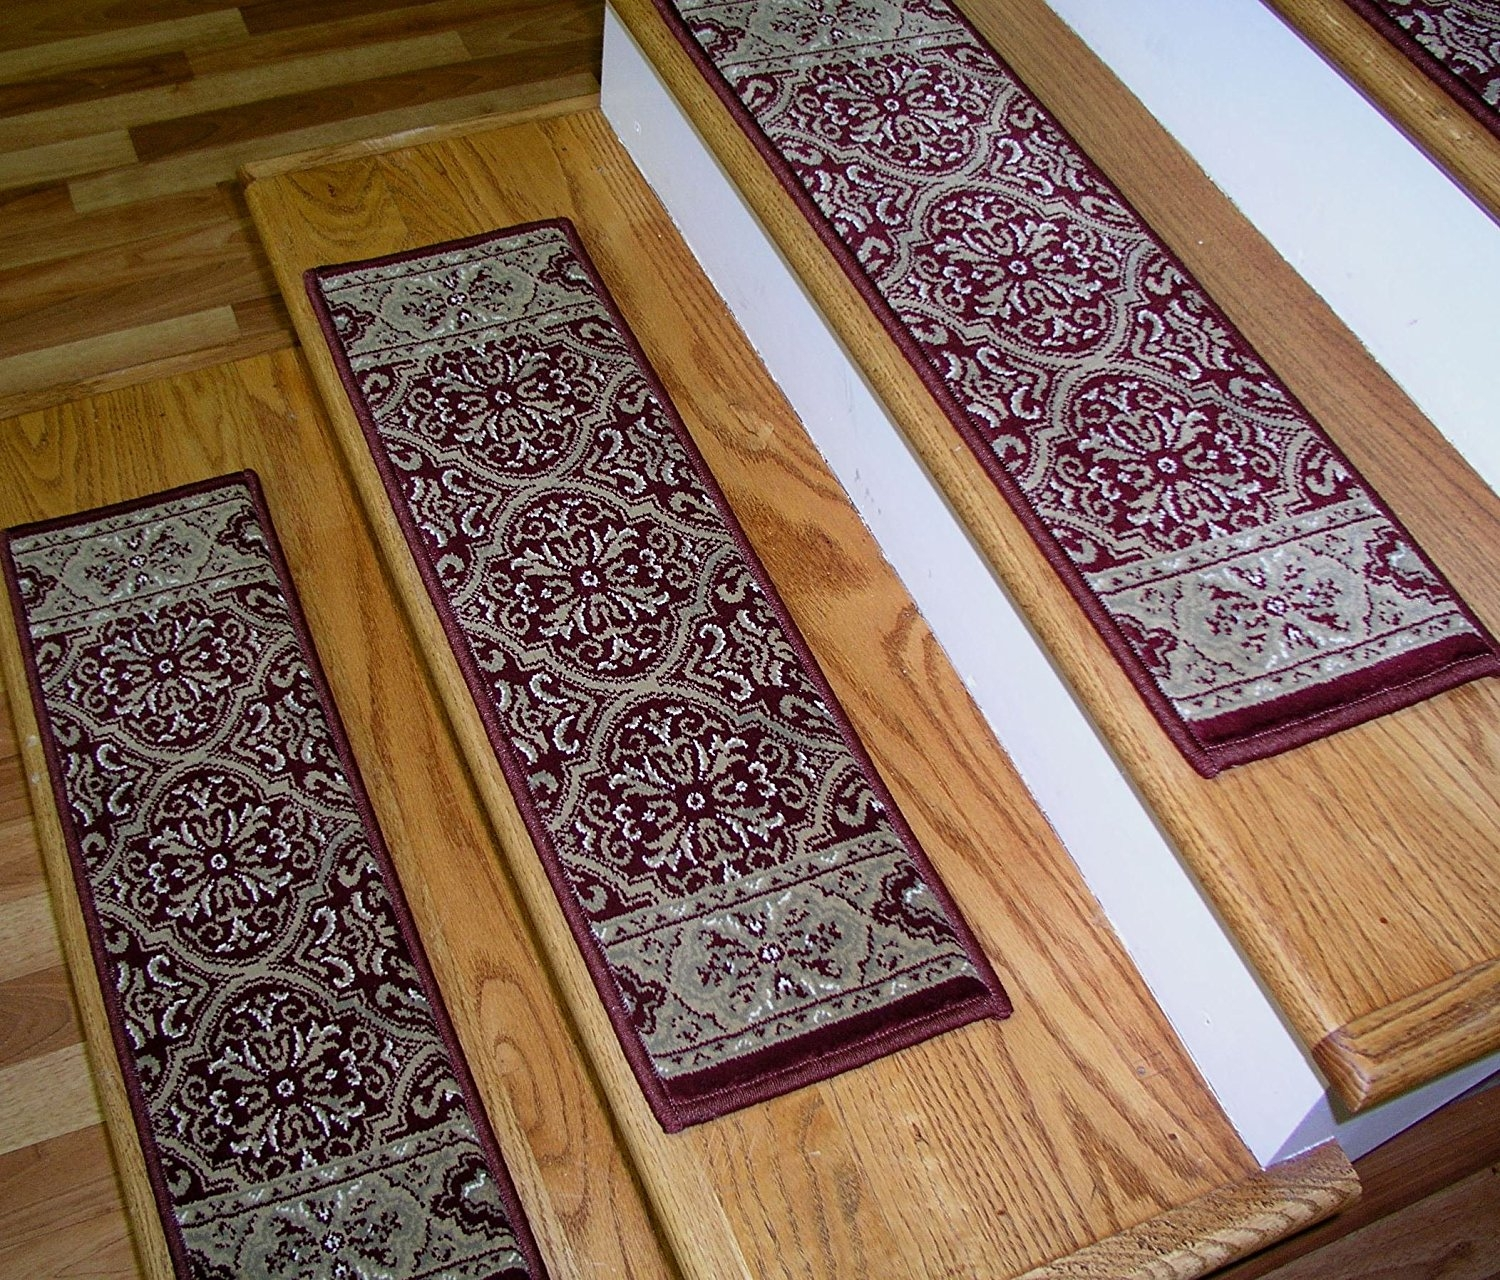 157575 Rug Depot Premium Carpet Stair Treads 26 X 8 Stair With Regard To Stair Treads And Matching Rugs (#1 of 20)